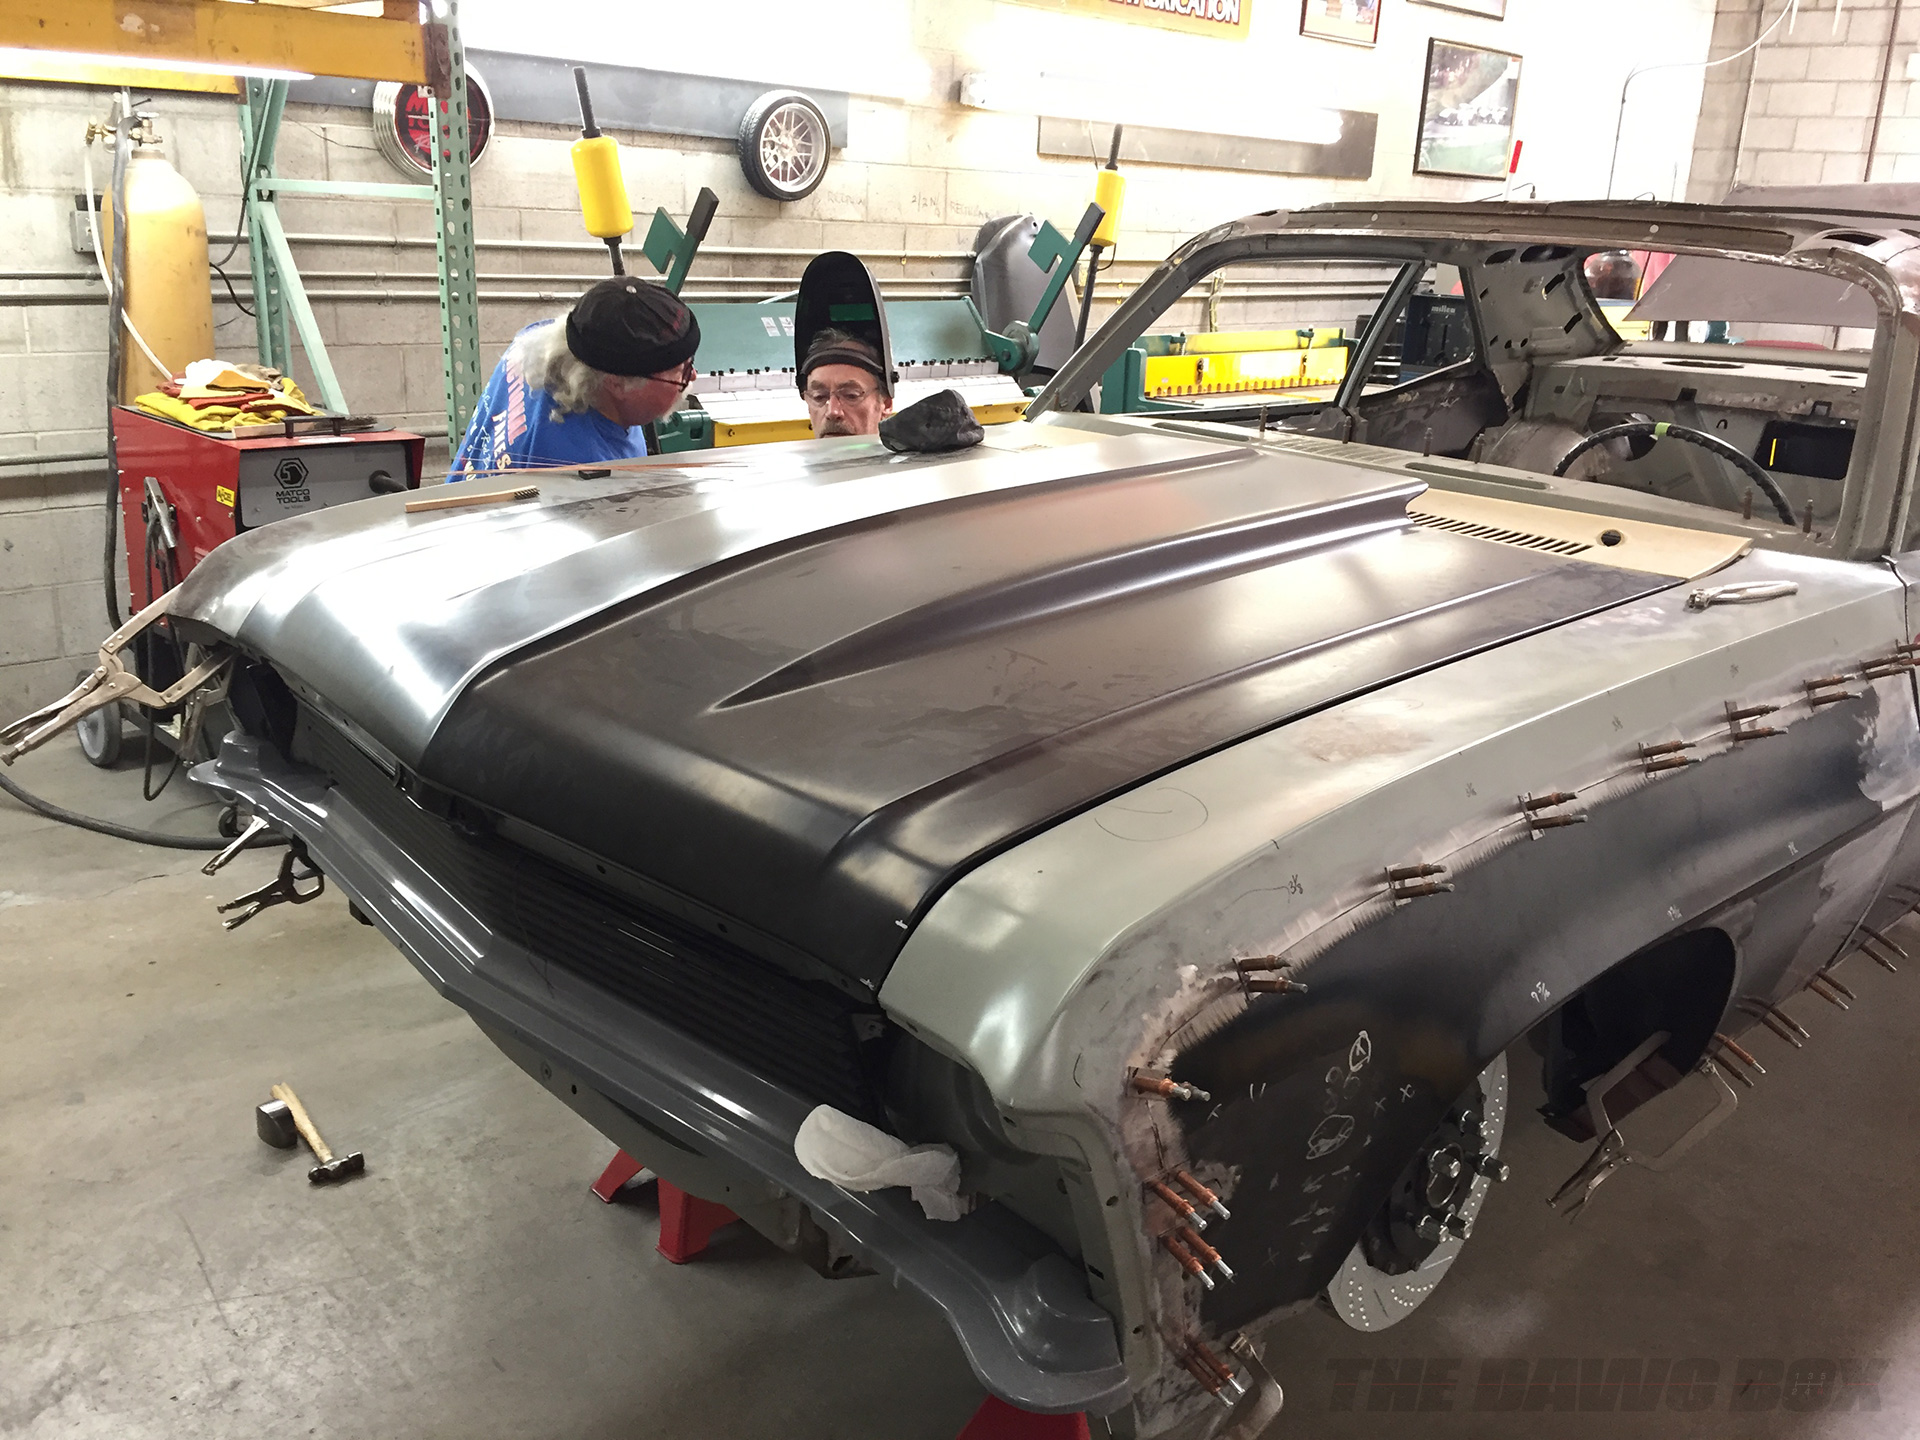 Novaro being worked on at the shop